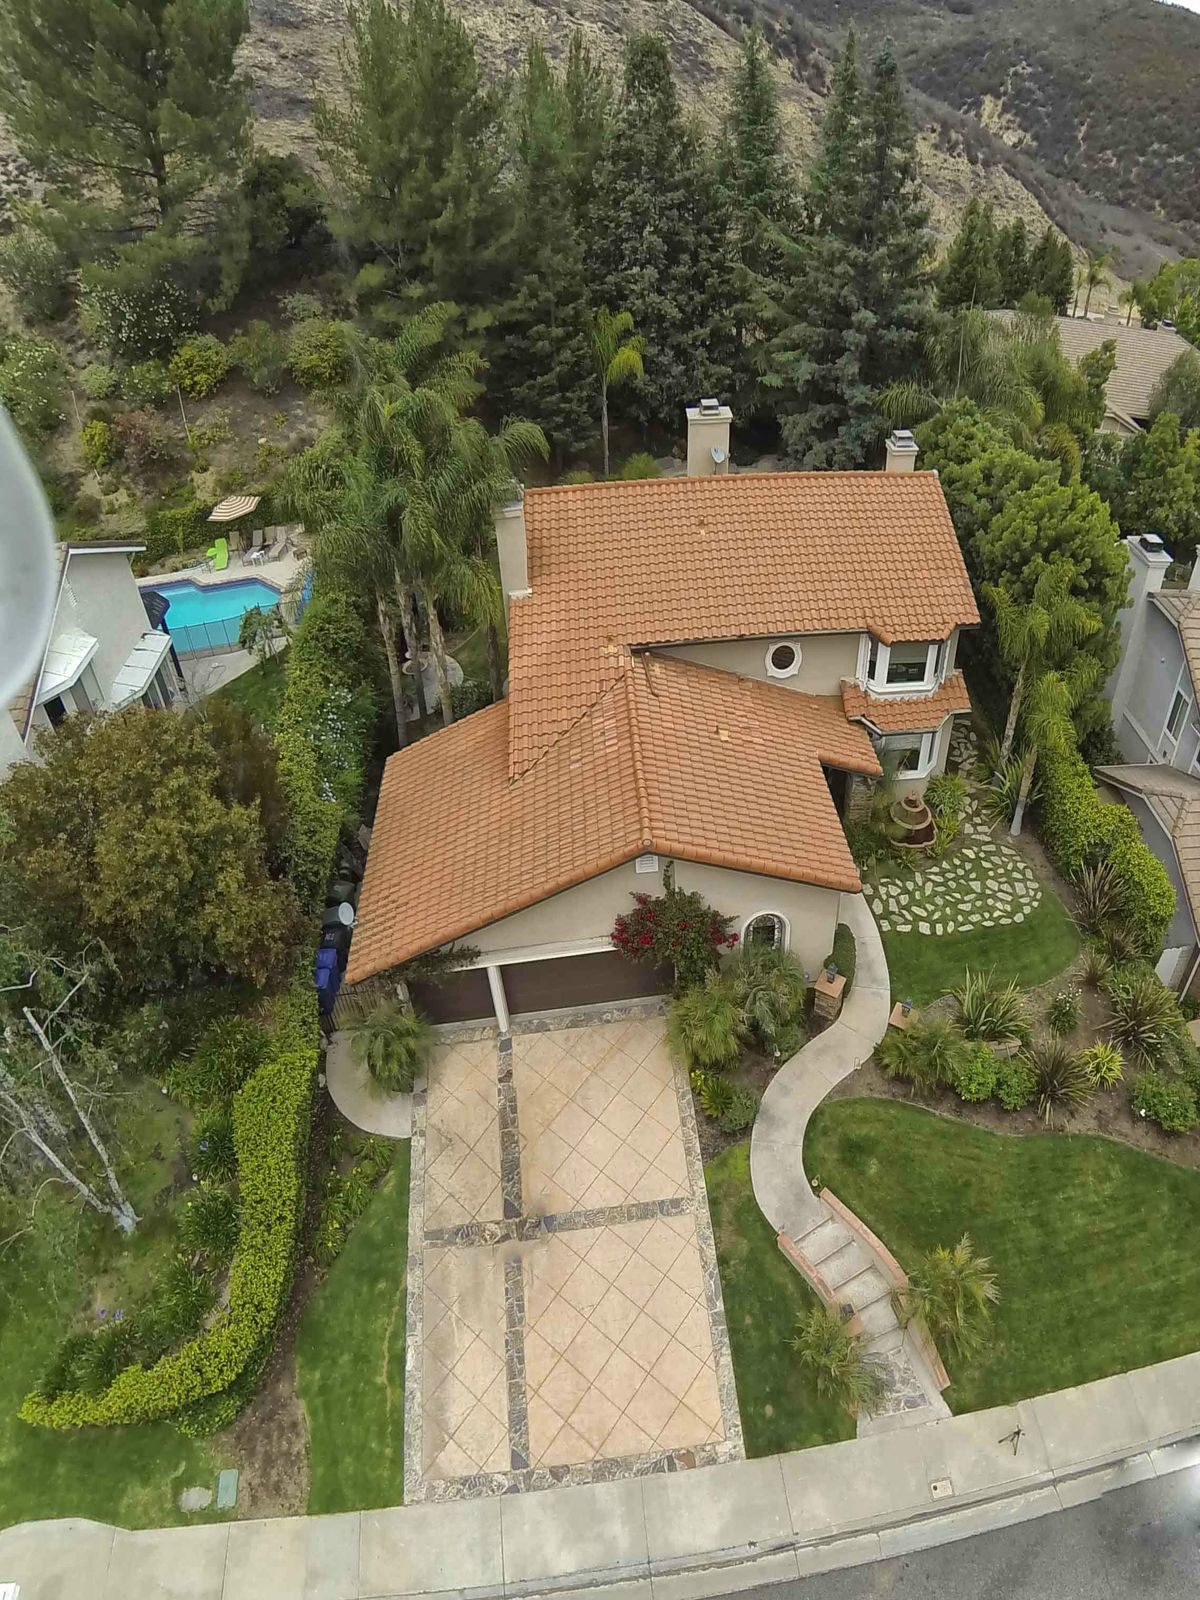 Stunning Designer Home, Agoura CA Single Family Home - Los Angeles Real Estate